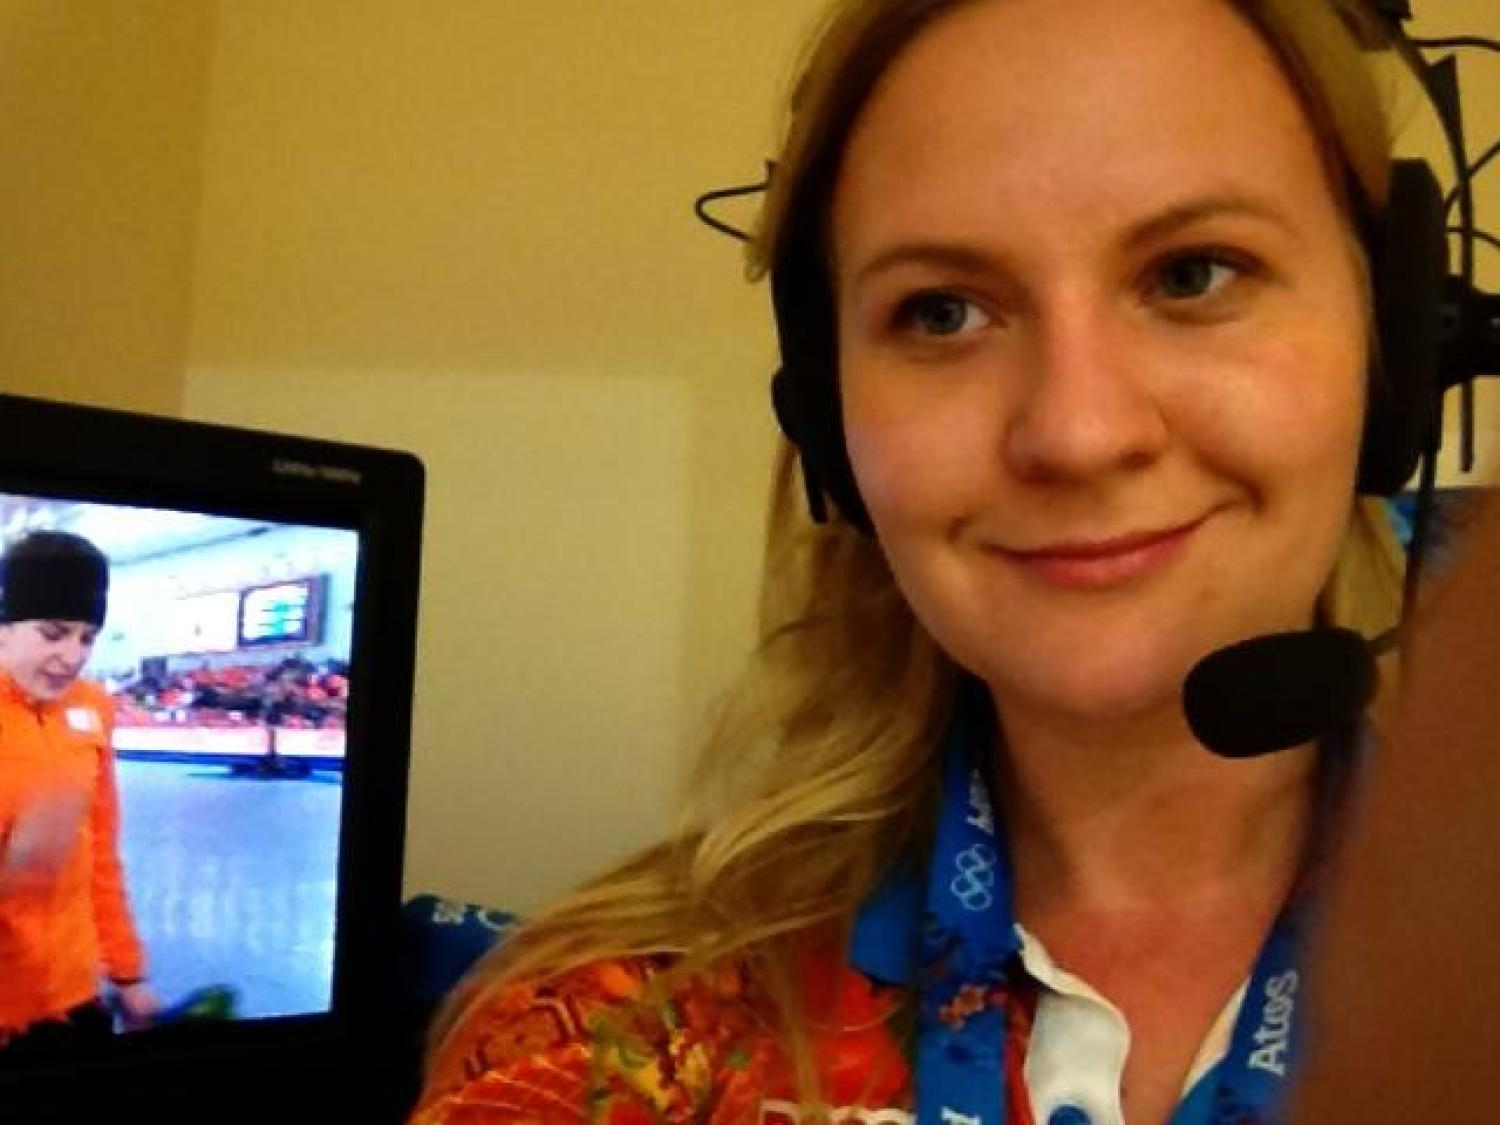 Reporting virtually from Berlin, Germany, Journalism Instructor Marina Dmukhovskaya is covering stories of athletes for the Olympic Channel, where she's a digital freelance writer.